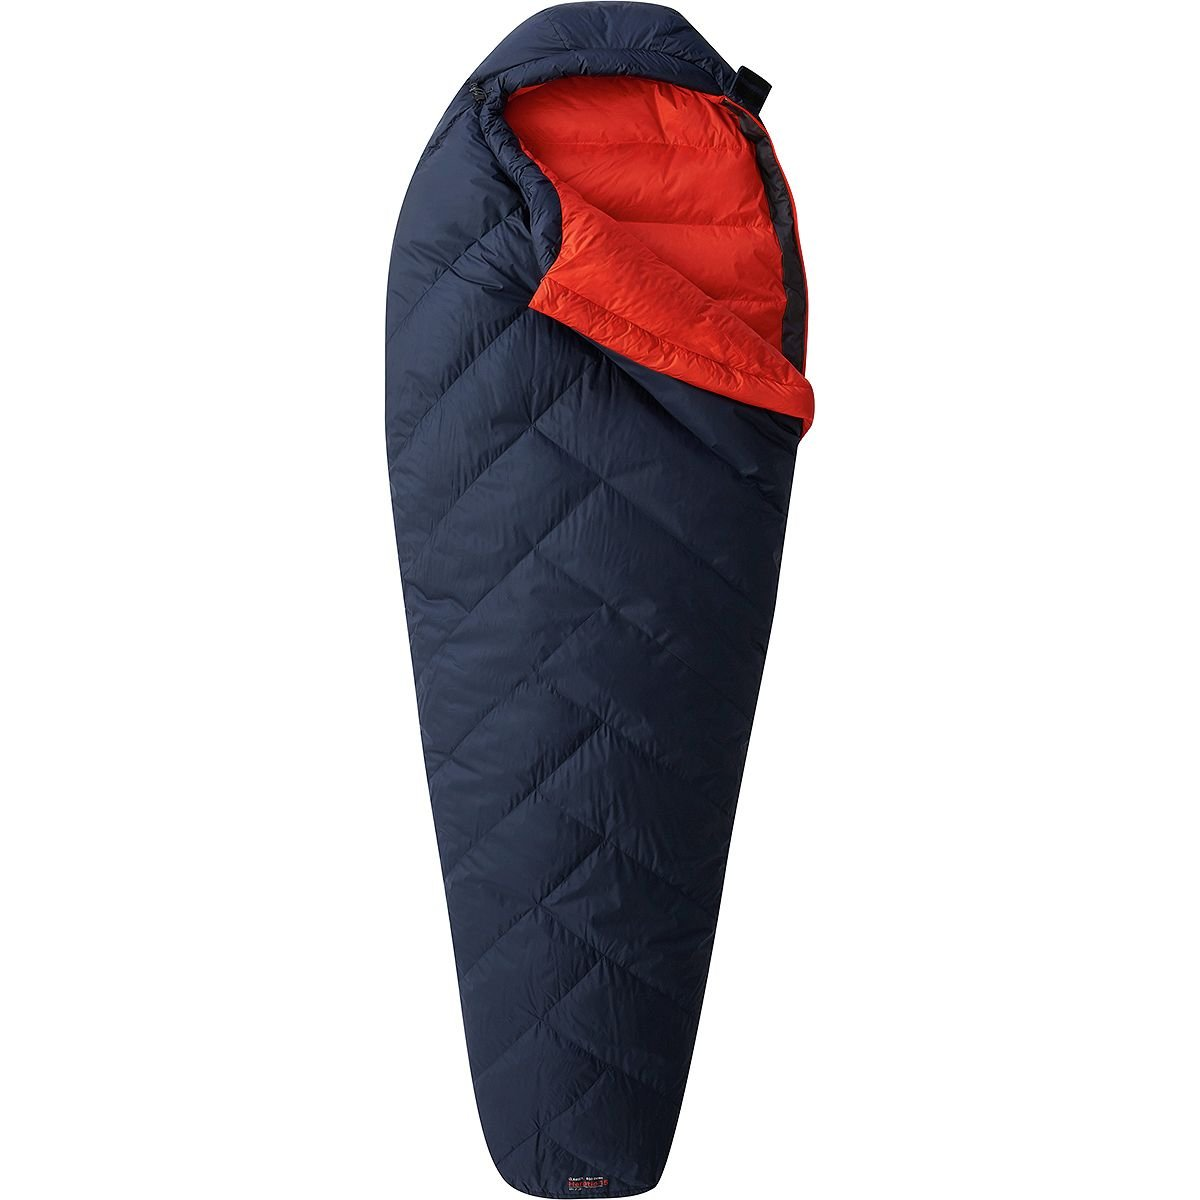 An image of Mountain Hardwear Heratio Women's Sleeping Bag